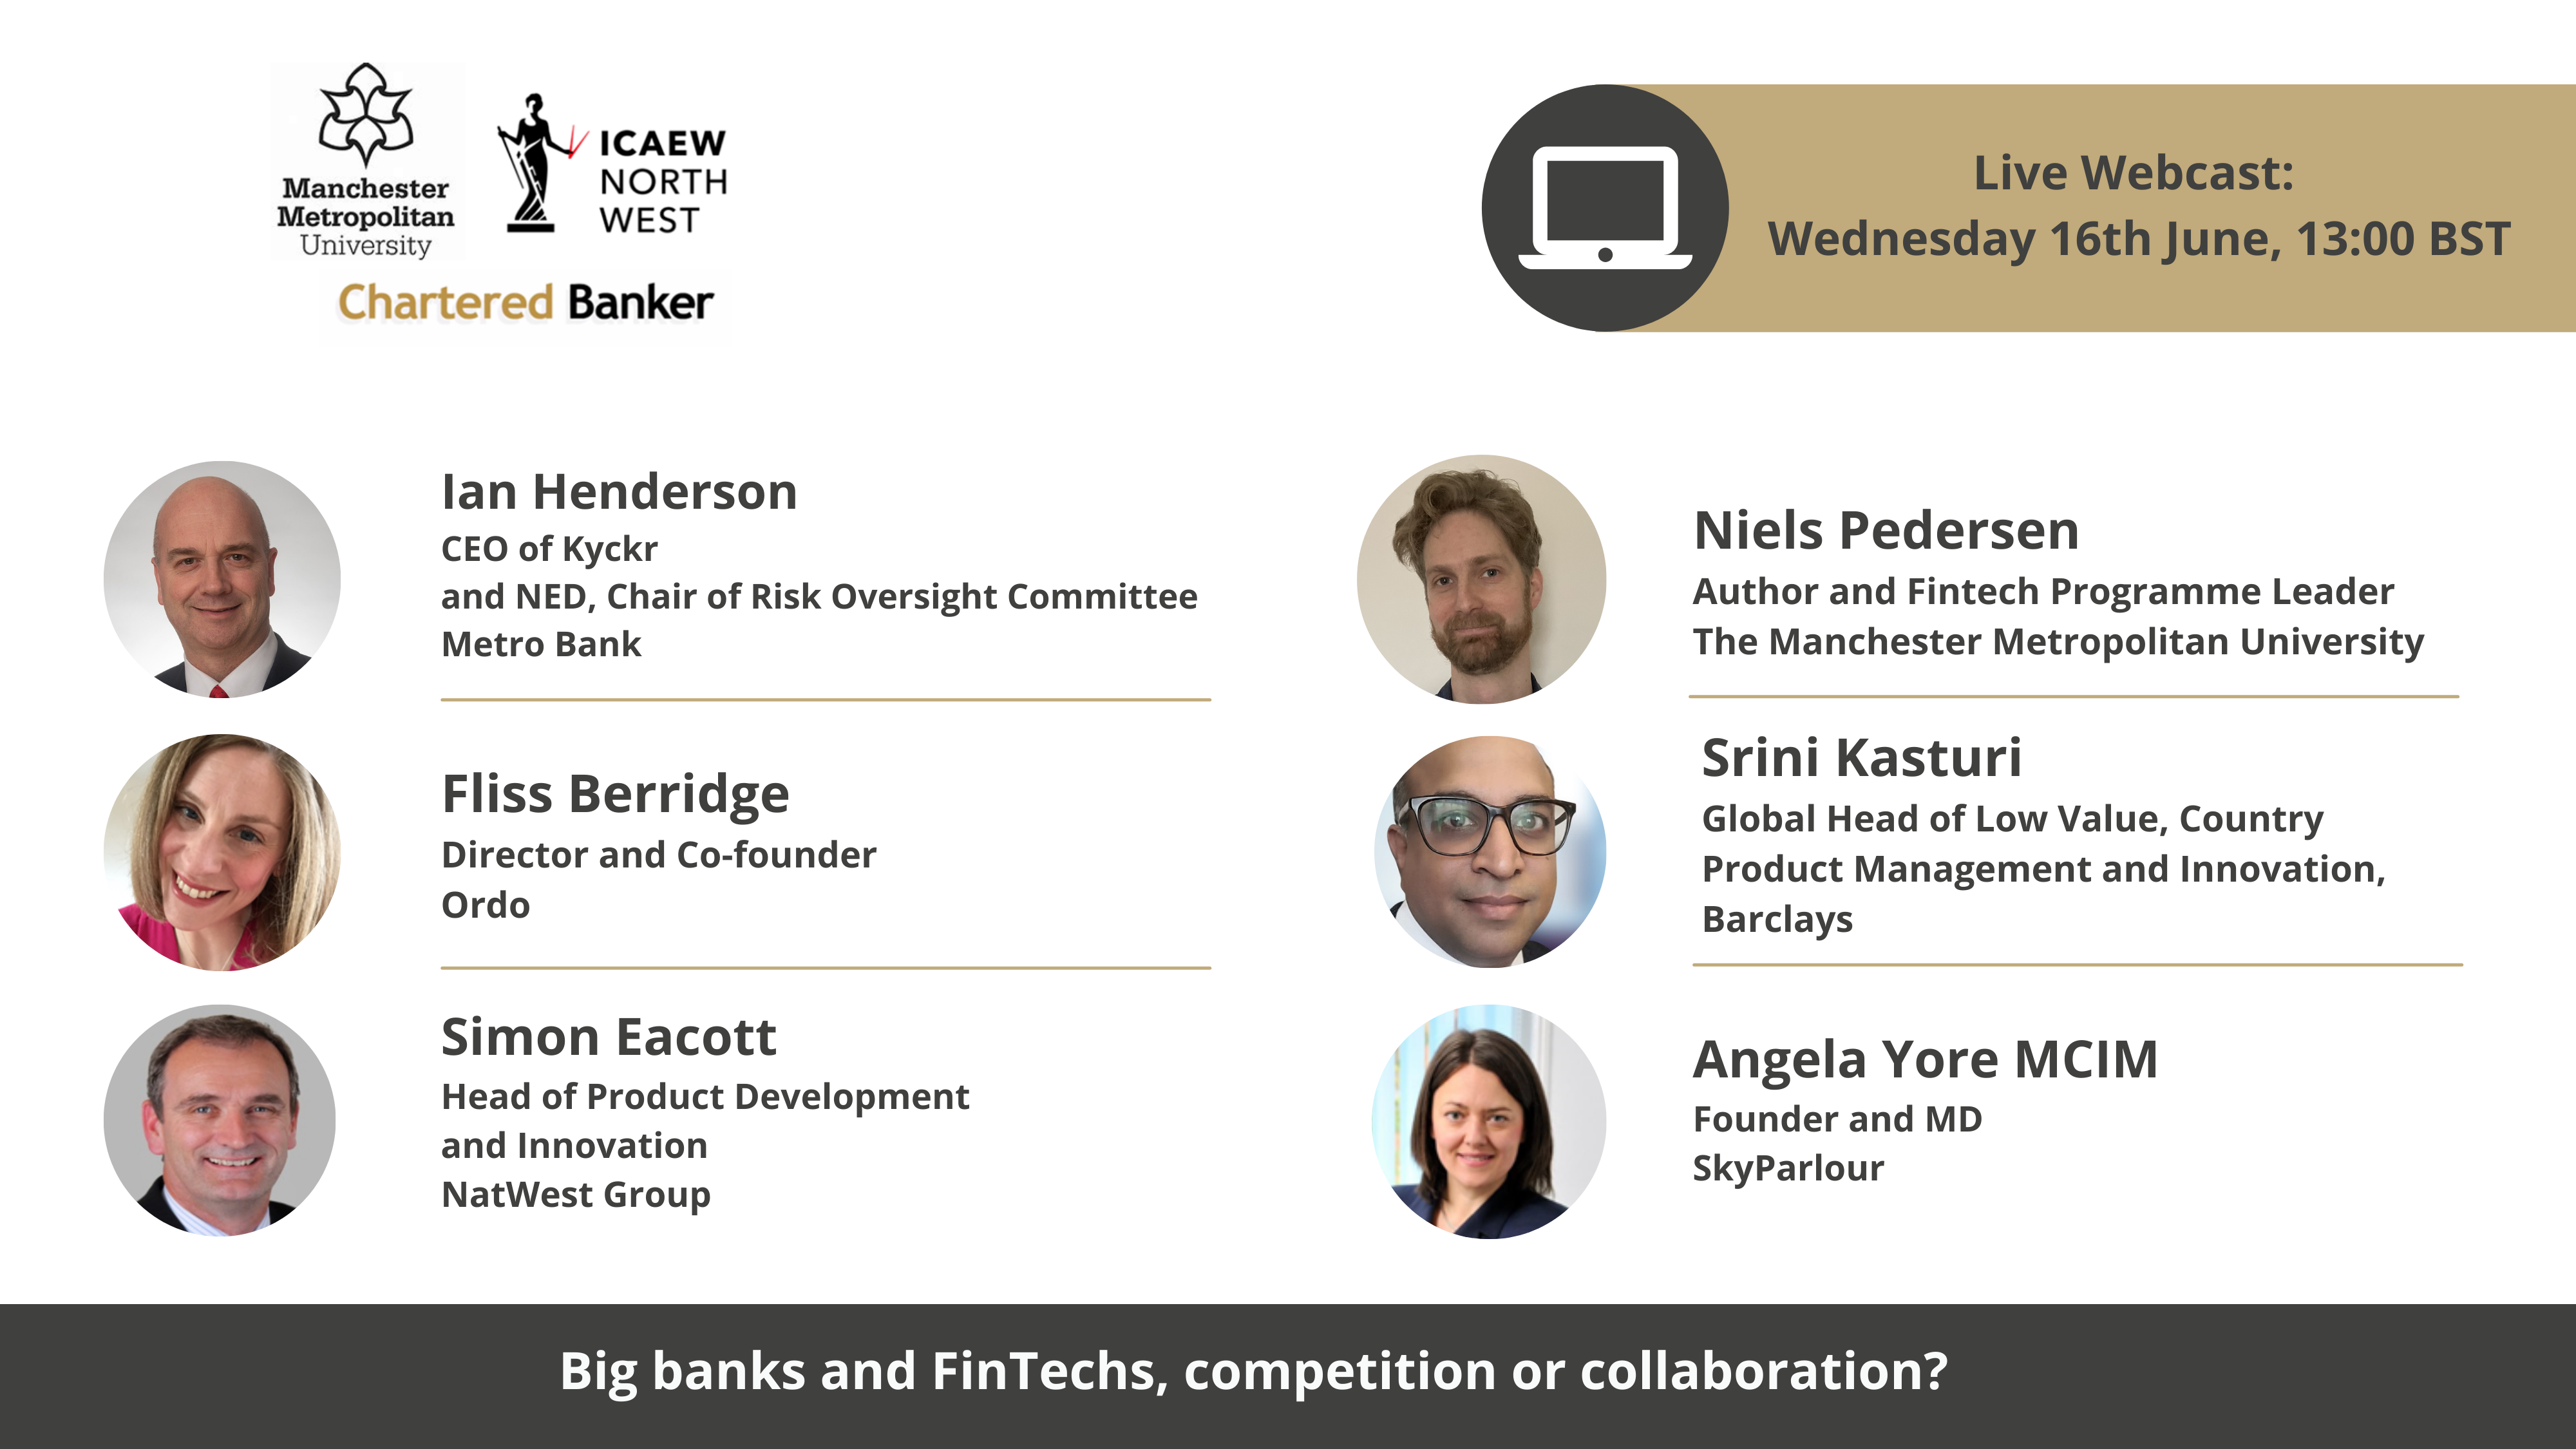 Big banks and FinTechs - competition or collaboration?